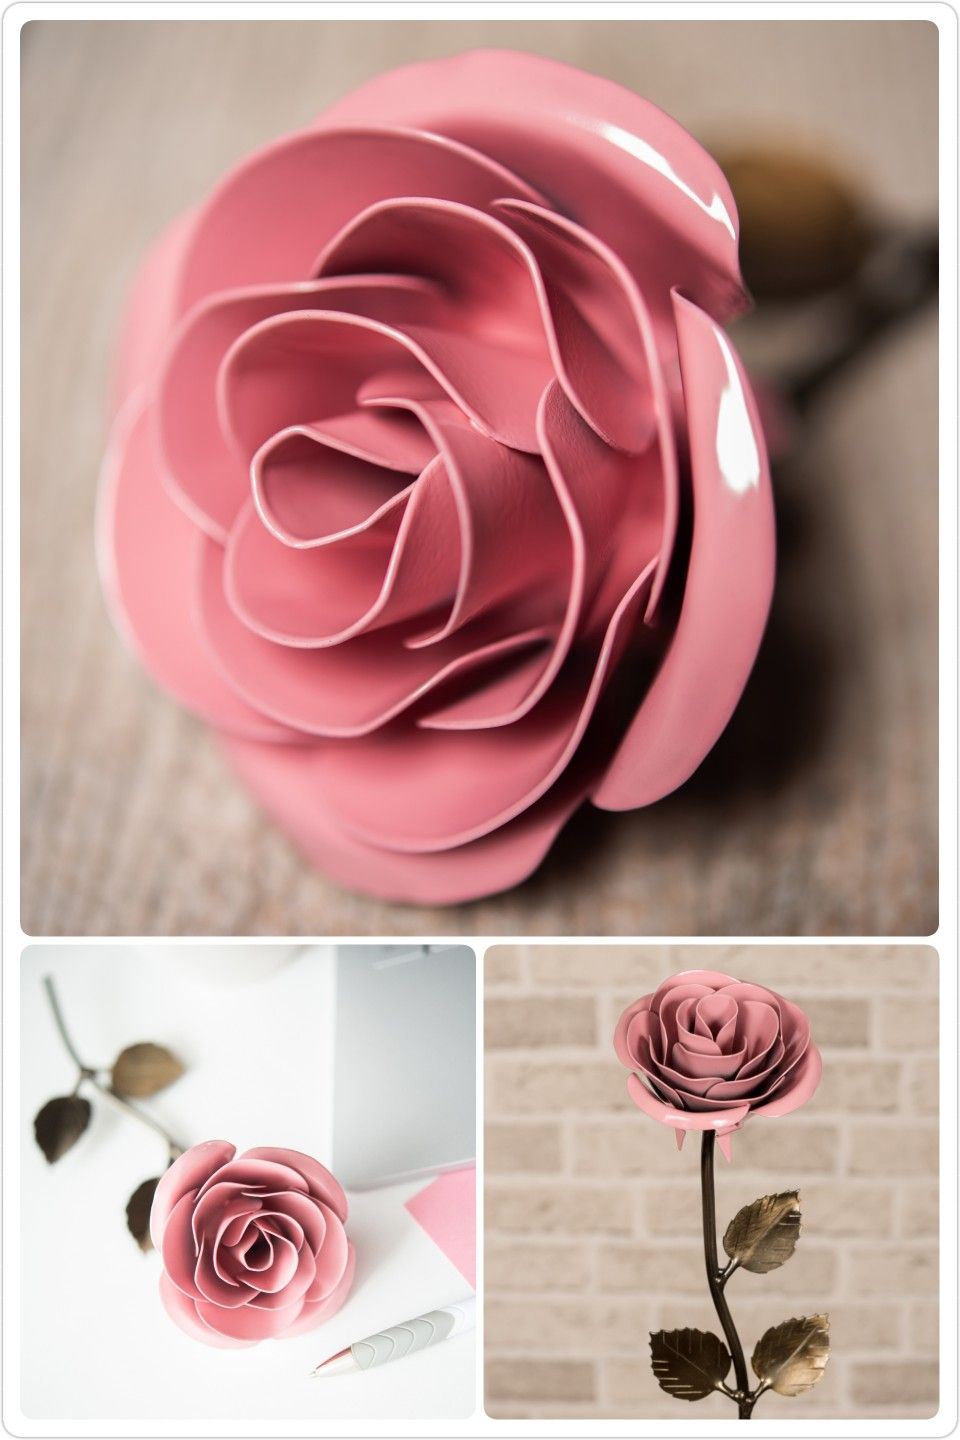 Metal Roses Are The Best Gifts For Your Wedding Anniversary Or A Friend S Birthday They Never Fade And Make Personalized Gift Wife